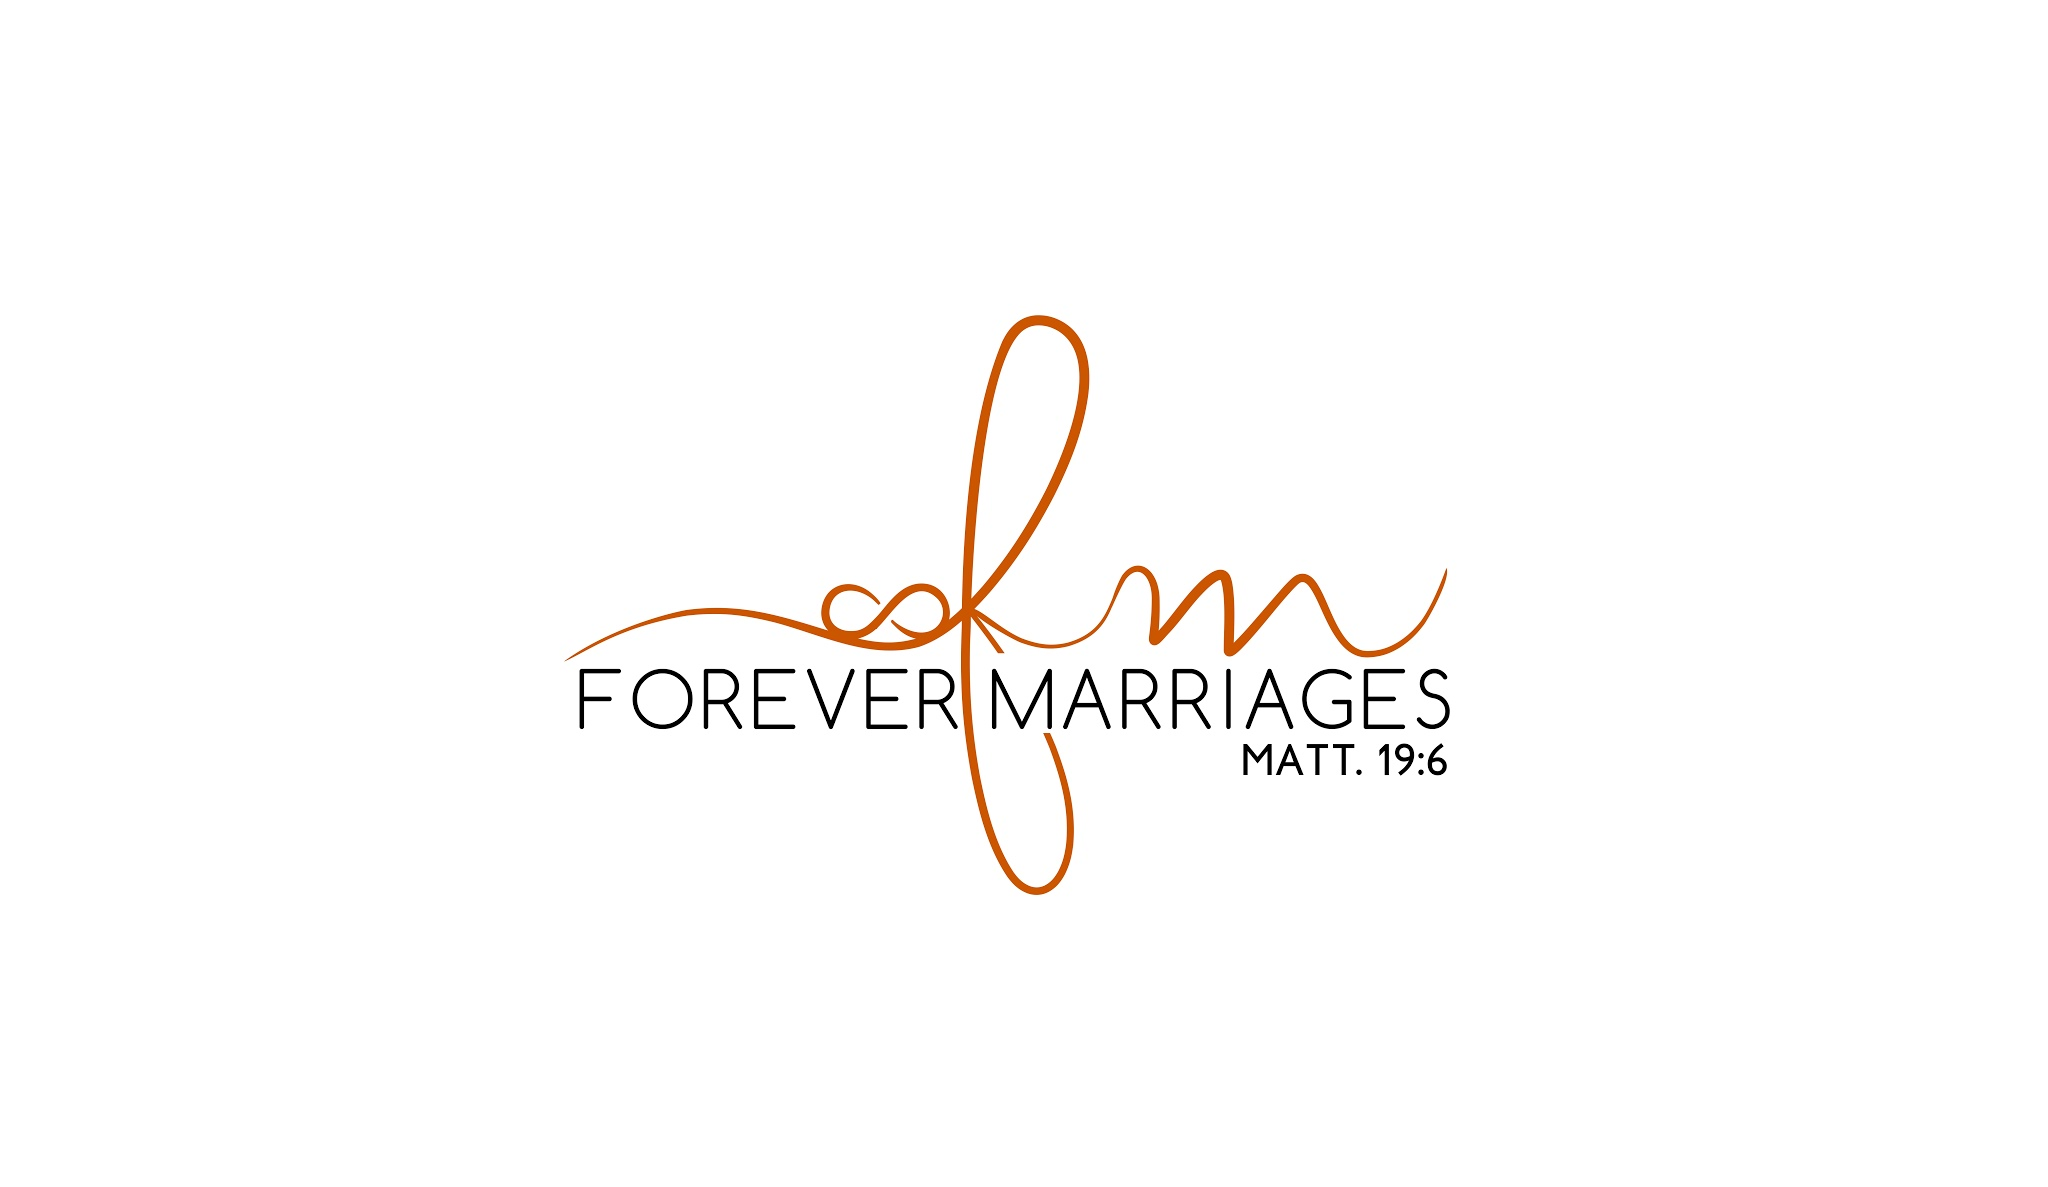 forever marriages logo on a white background